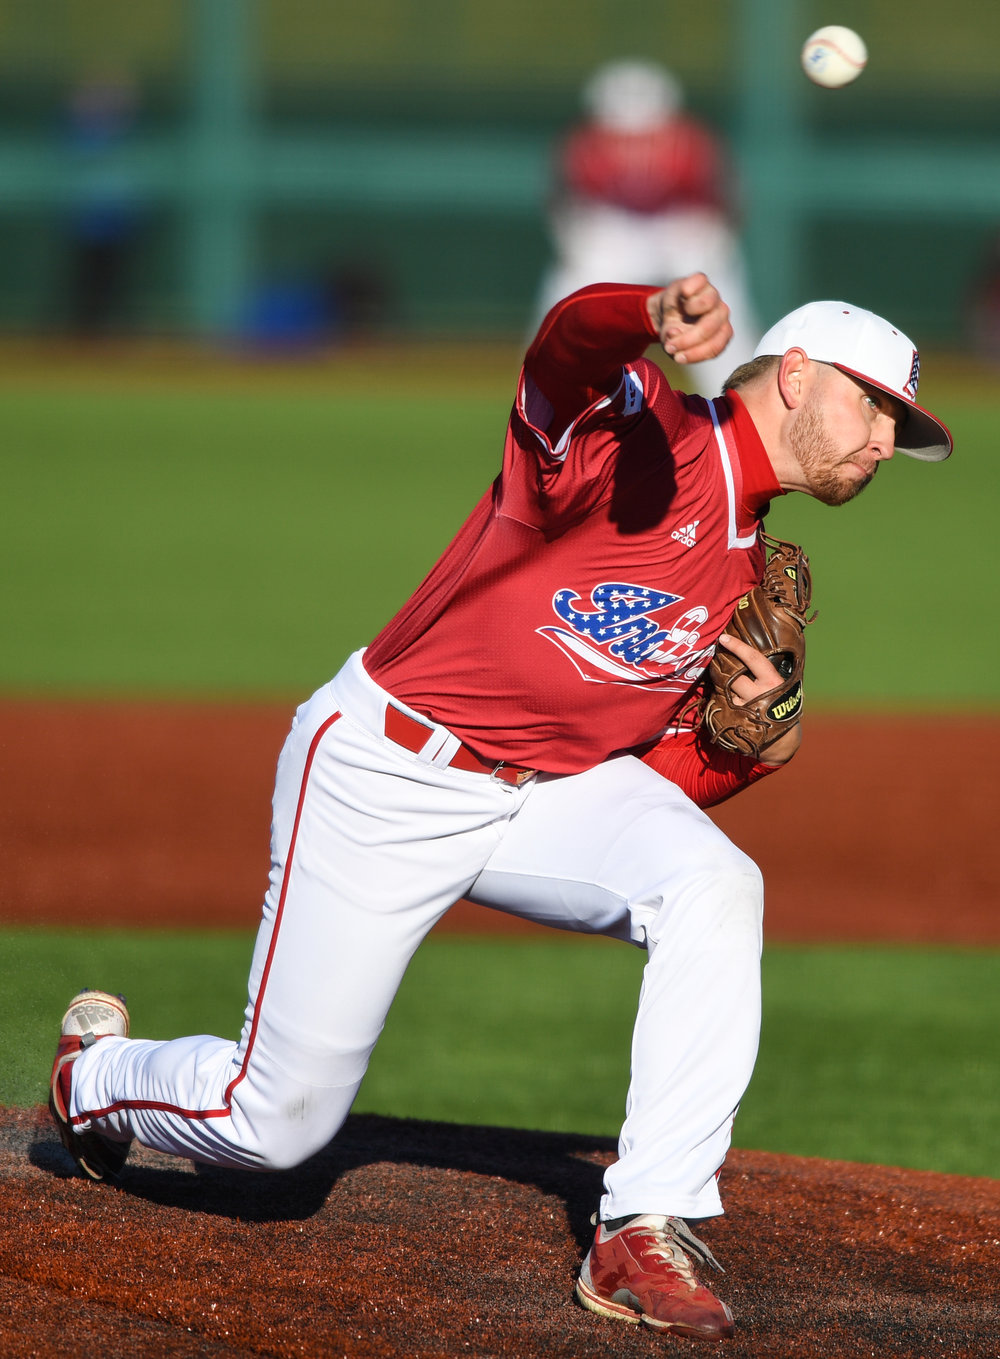 Okotoks Dawgs grad Matt Lloyd (Okotoks, Alta.) saved a pair of games for the Indiana Hooisers.